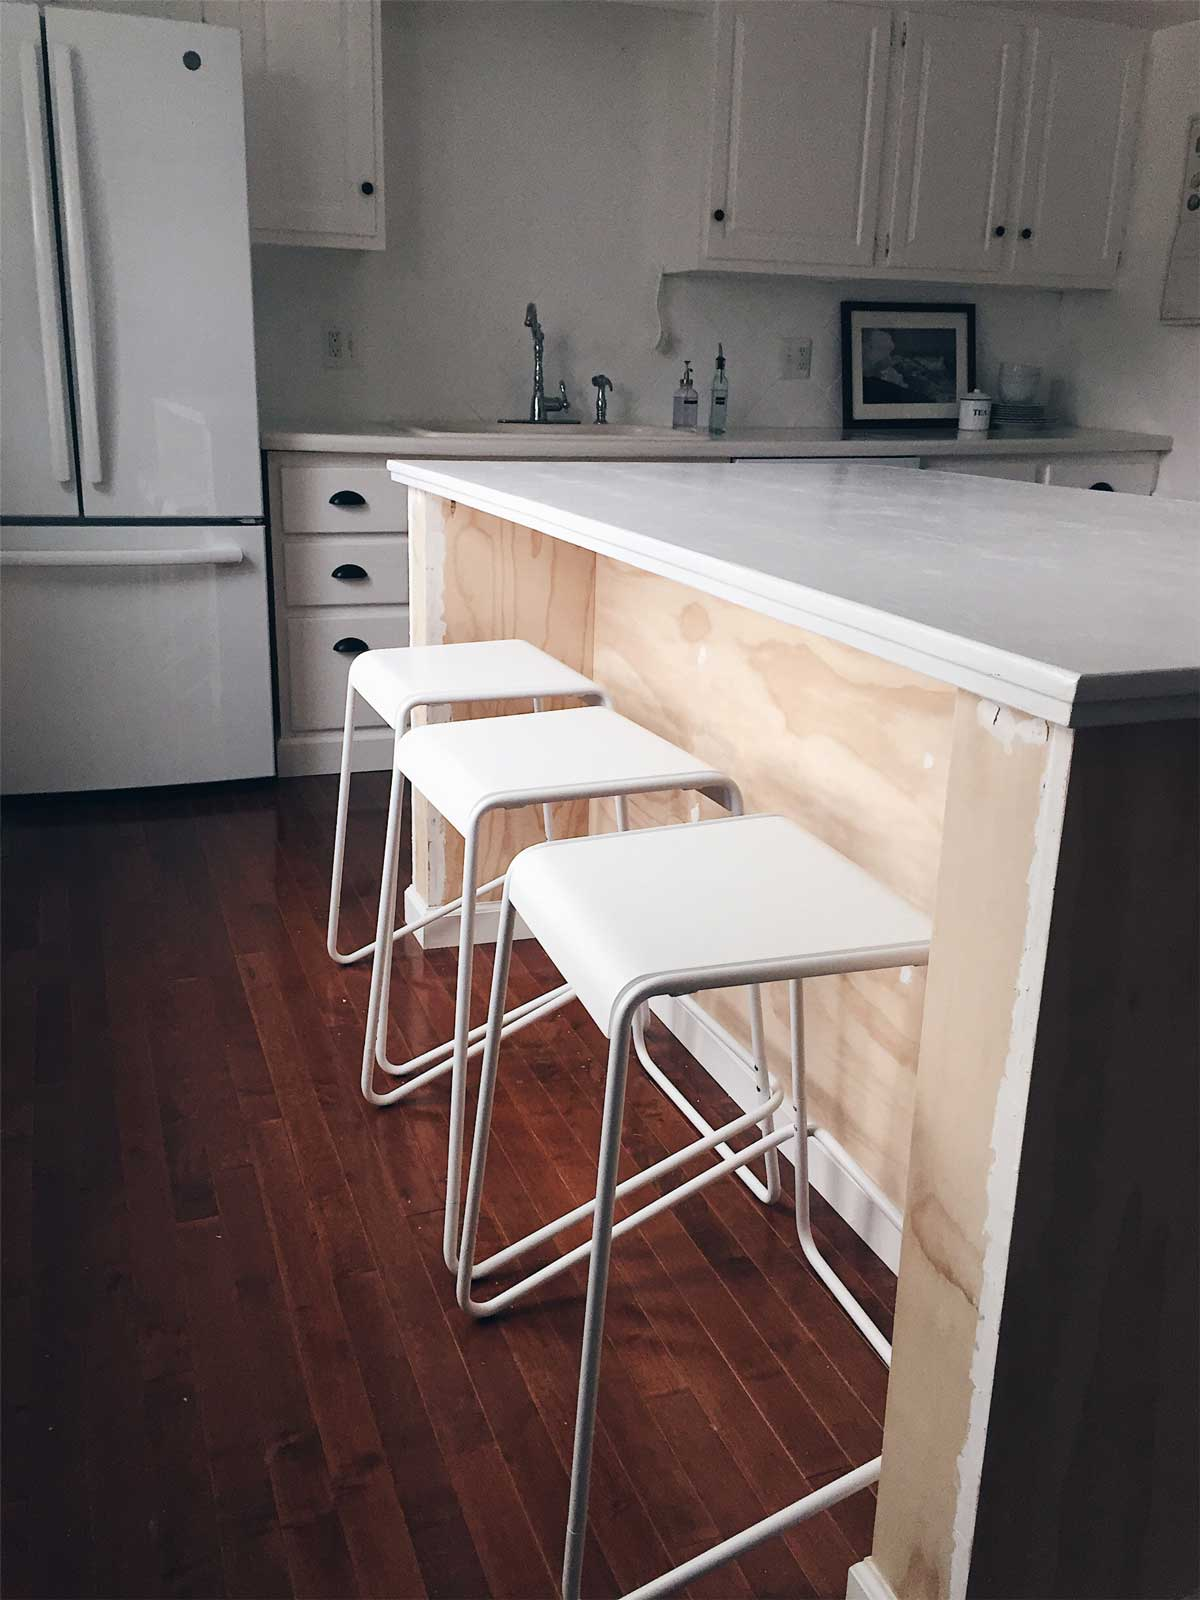 Rachel Schultz On Homemaking Wiring An Outlet For A Microwave Next Was The We Had Our Electrician Install Into Base Of Platform Cabinets Sit That Could